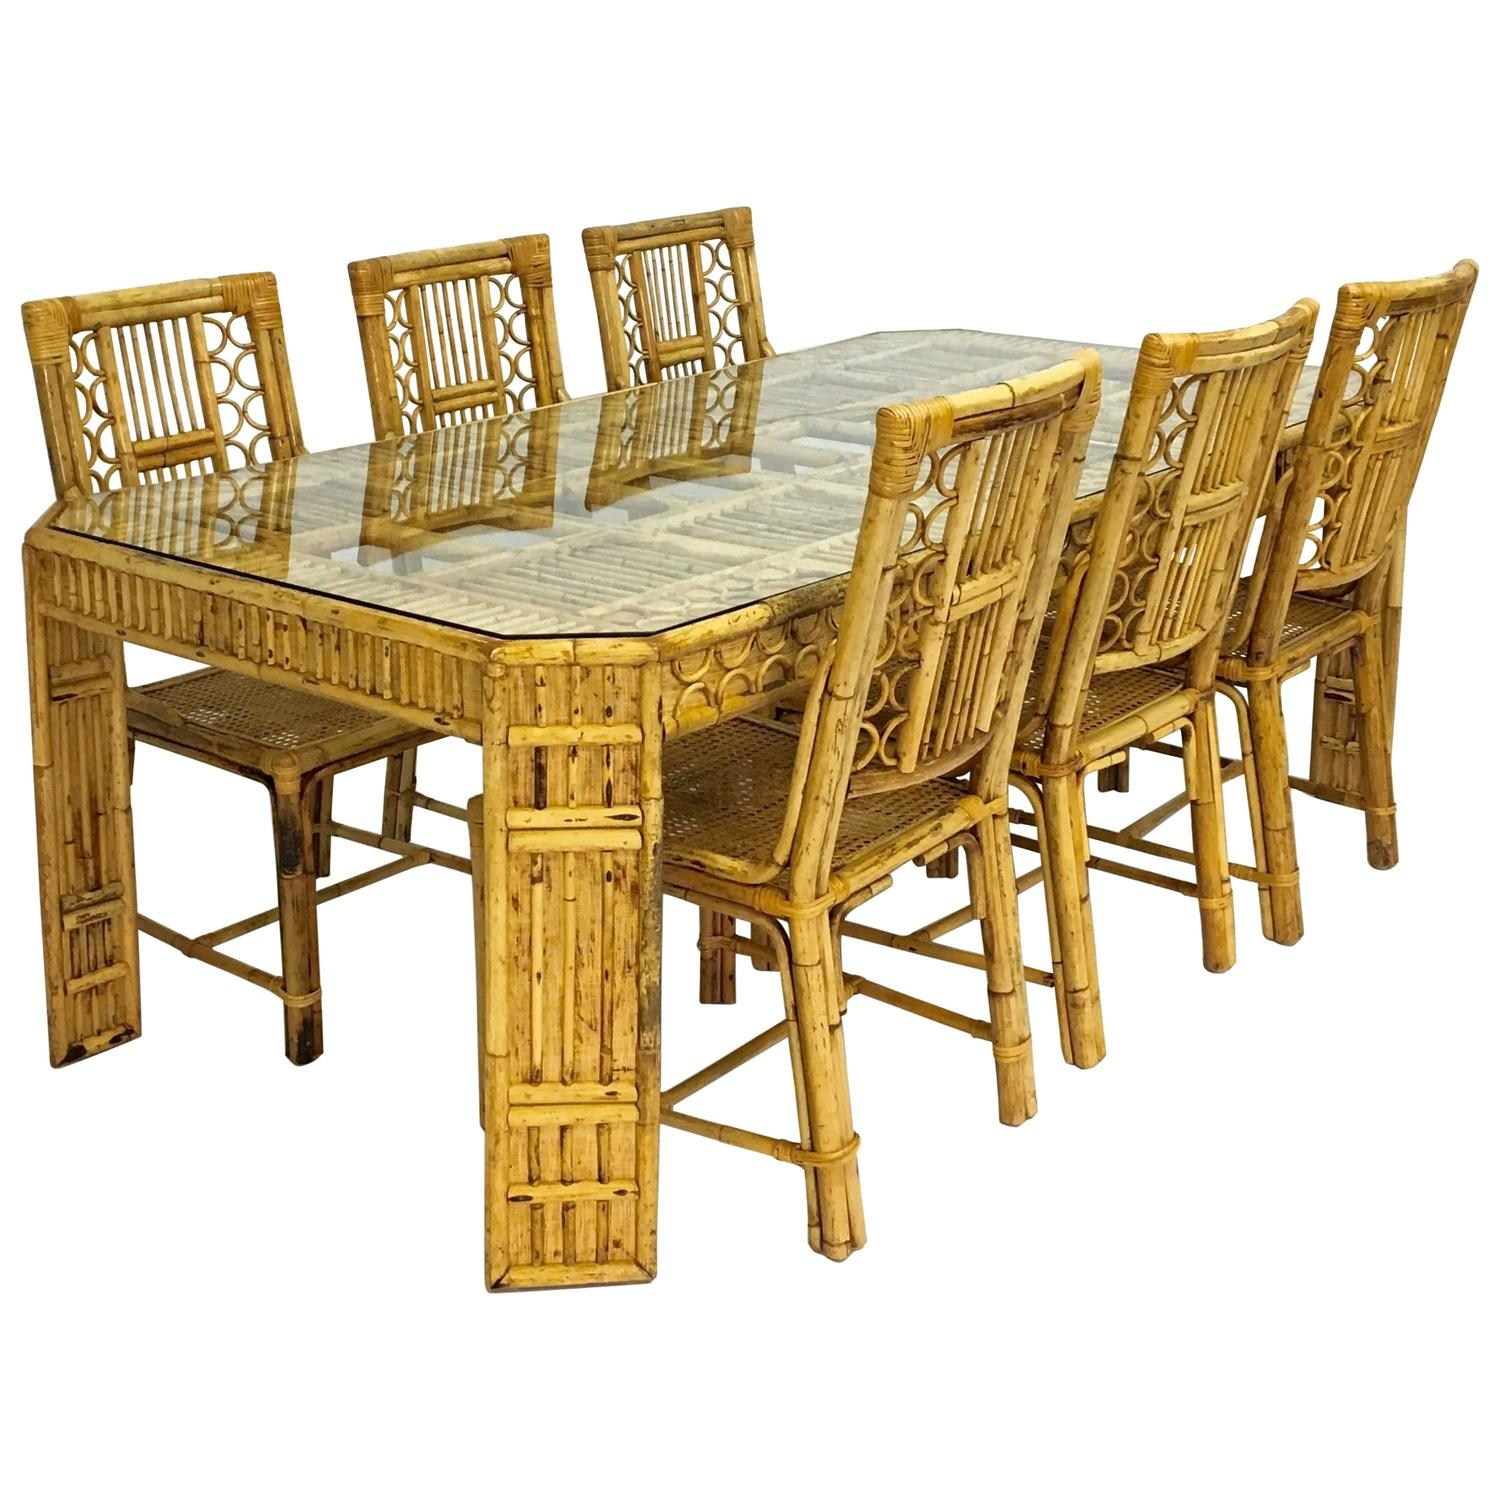 bamboo chairs nursery chair canada mid century and rattan dining table six